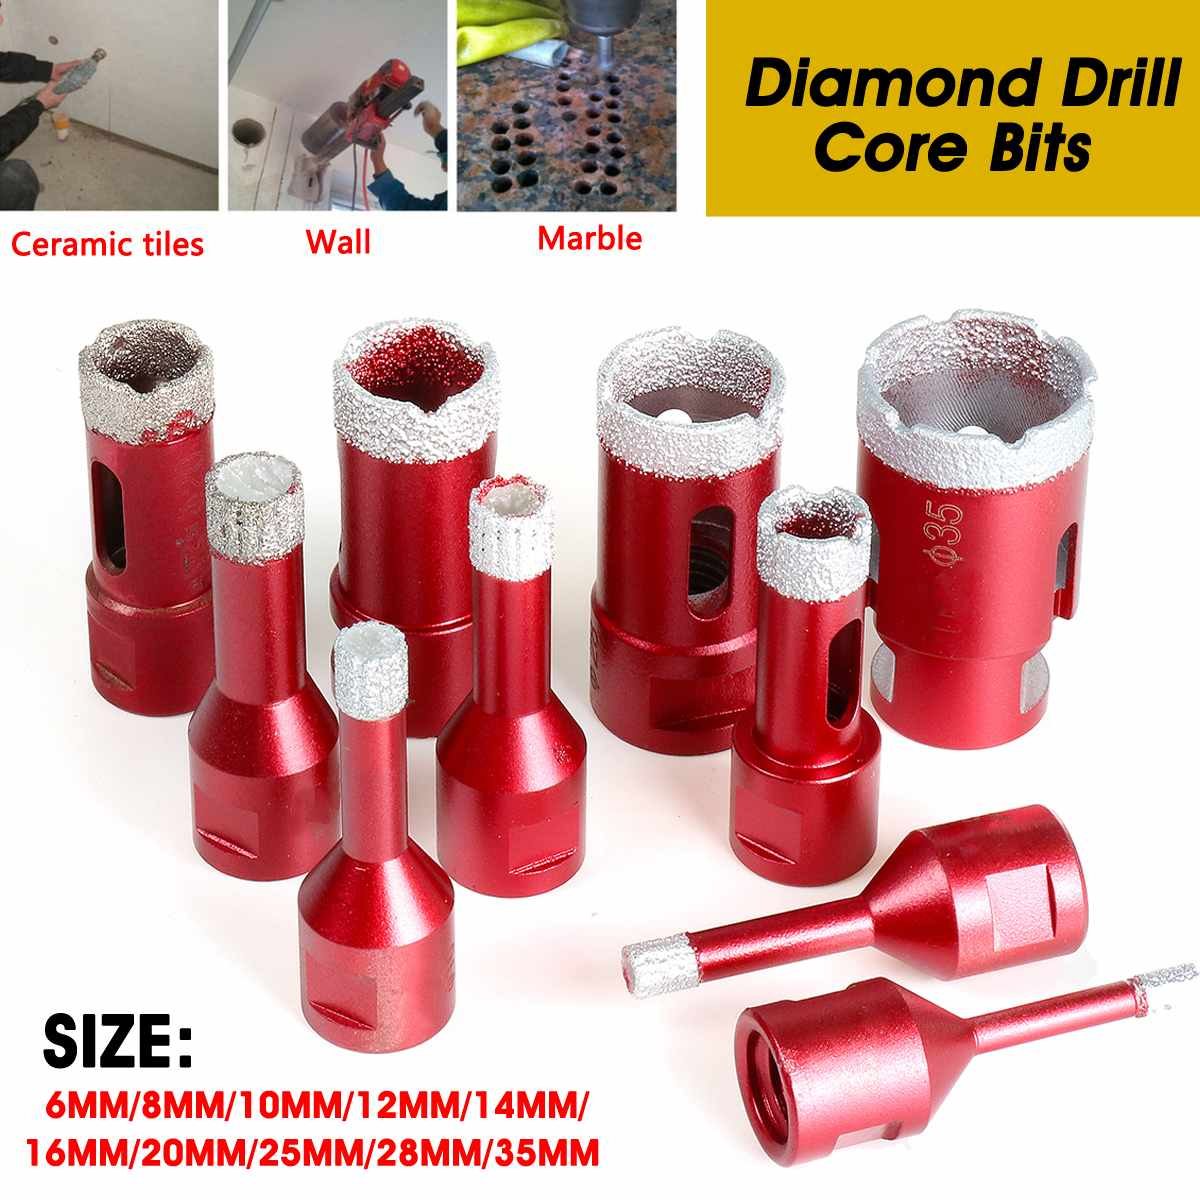 Doersupp 6/8/10/12/14/16/20/25/28/35mm M14 Diamond Opener Drill Core Bits Drilling Hole Saw Tools For Tile Marble Granite Stone